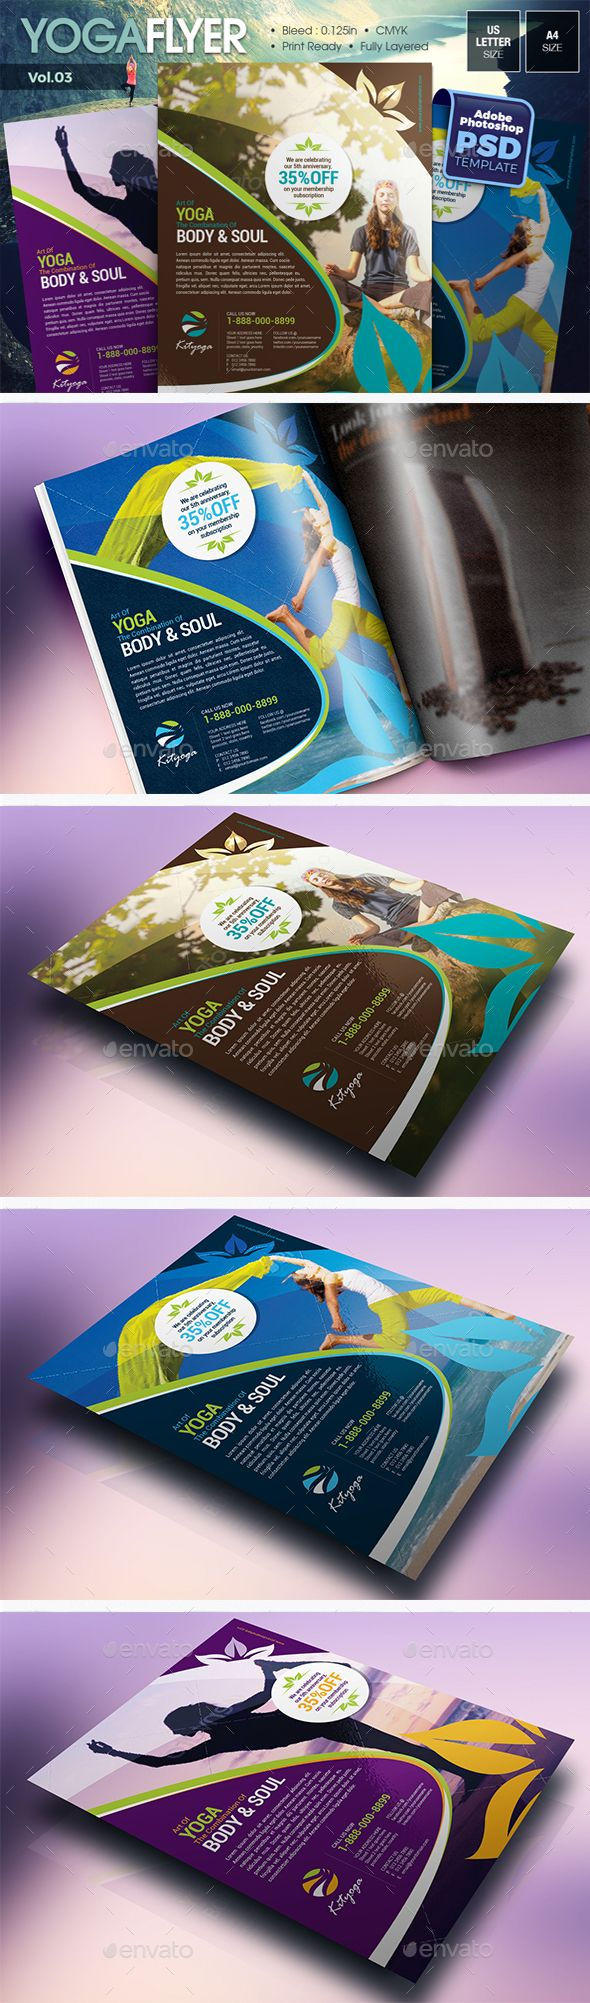 Simple Yoga Flyer Vol.03 | Simple yoga, Flyer template and Yoga